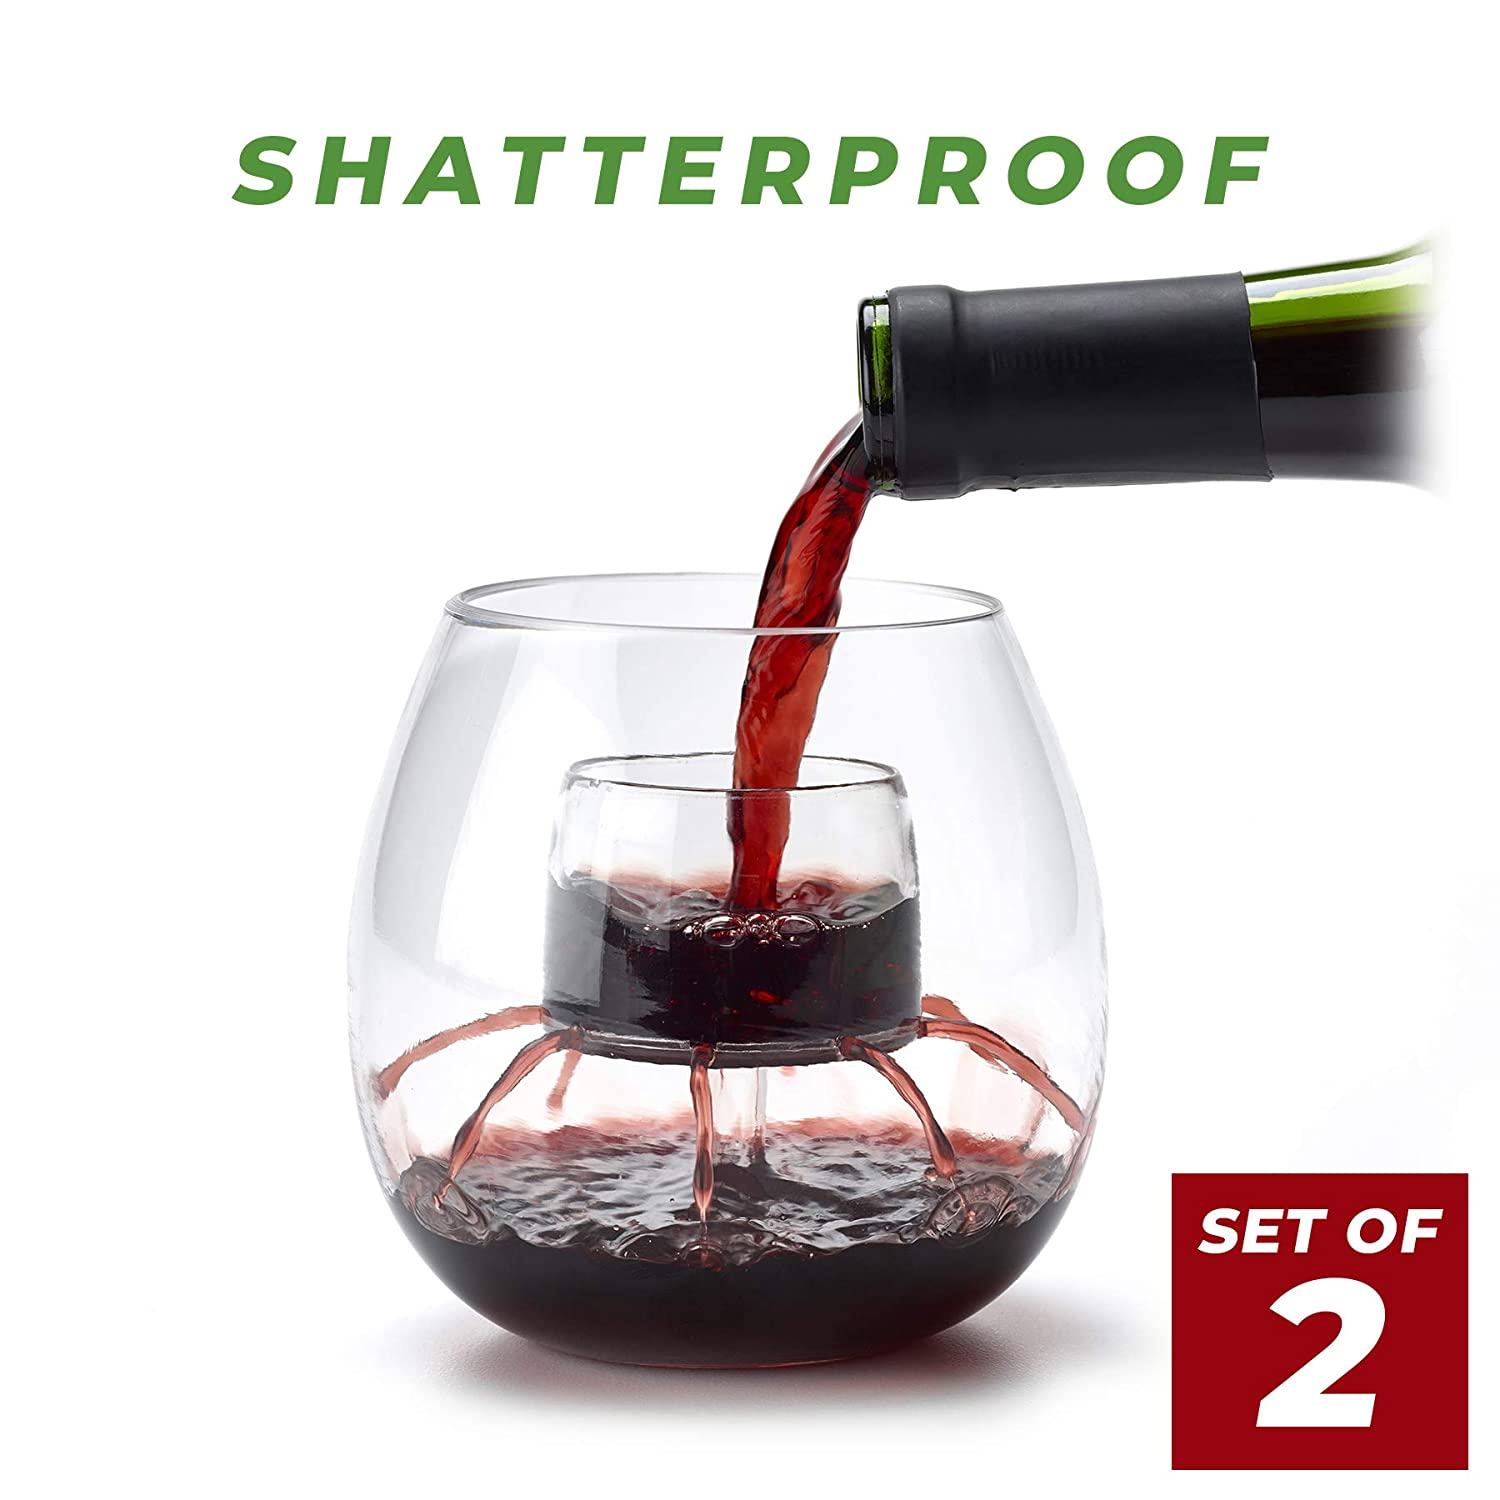 Patented in-The-Glass Wine Aerator and Decanter for Outdoor Use Chevalier SHATTERPROOF Stemless Aerating Wine Glasses Set of 2